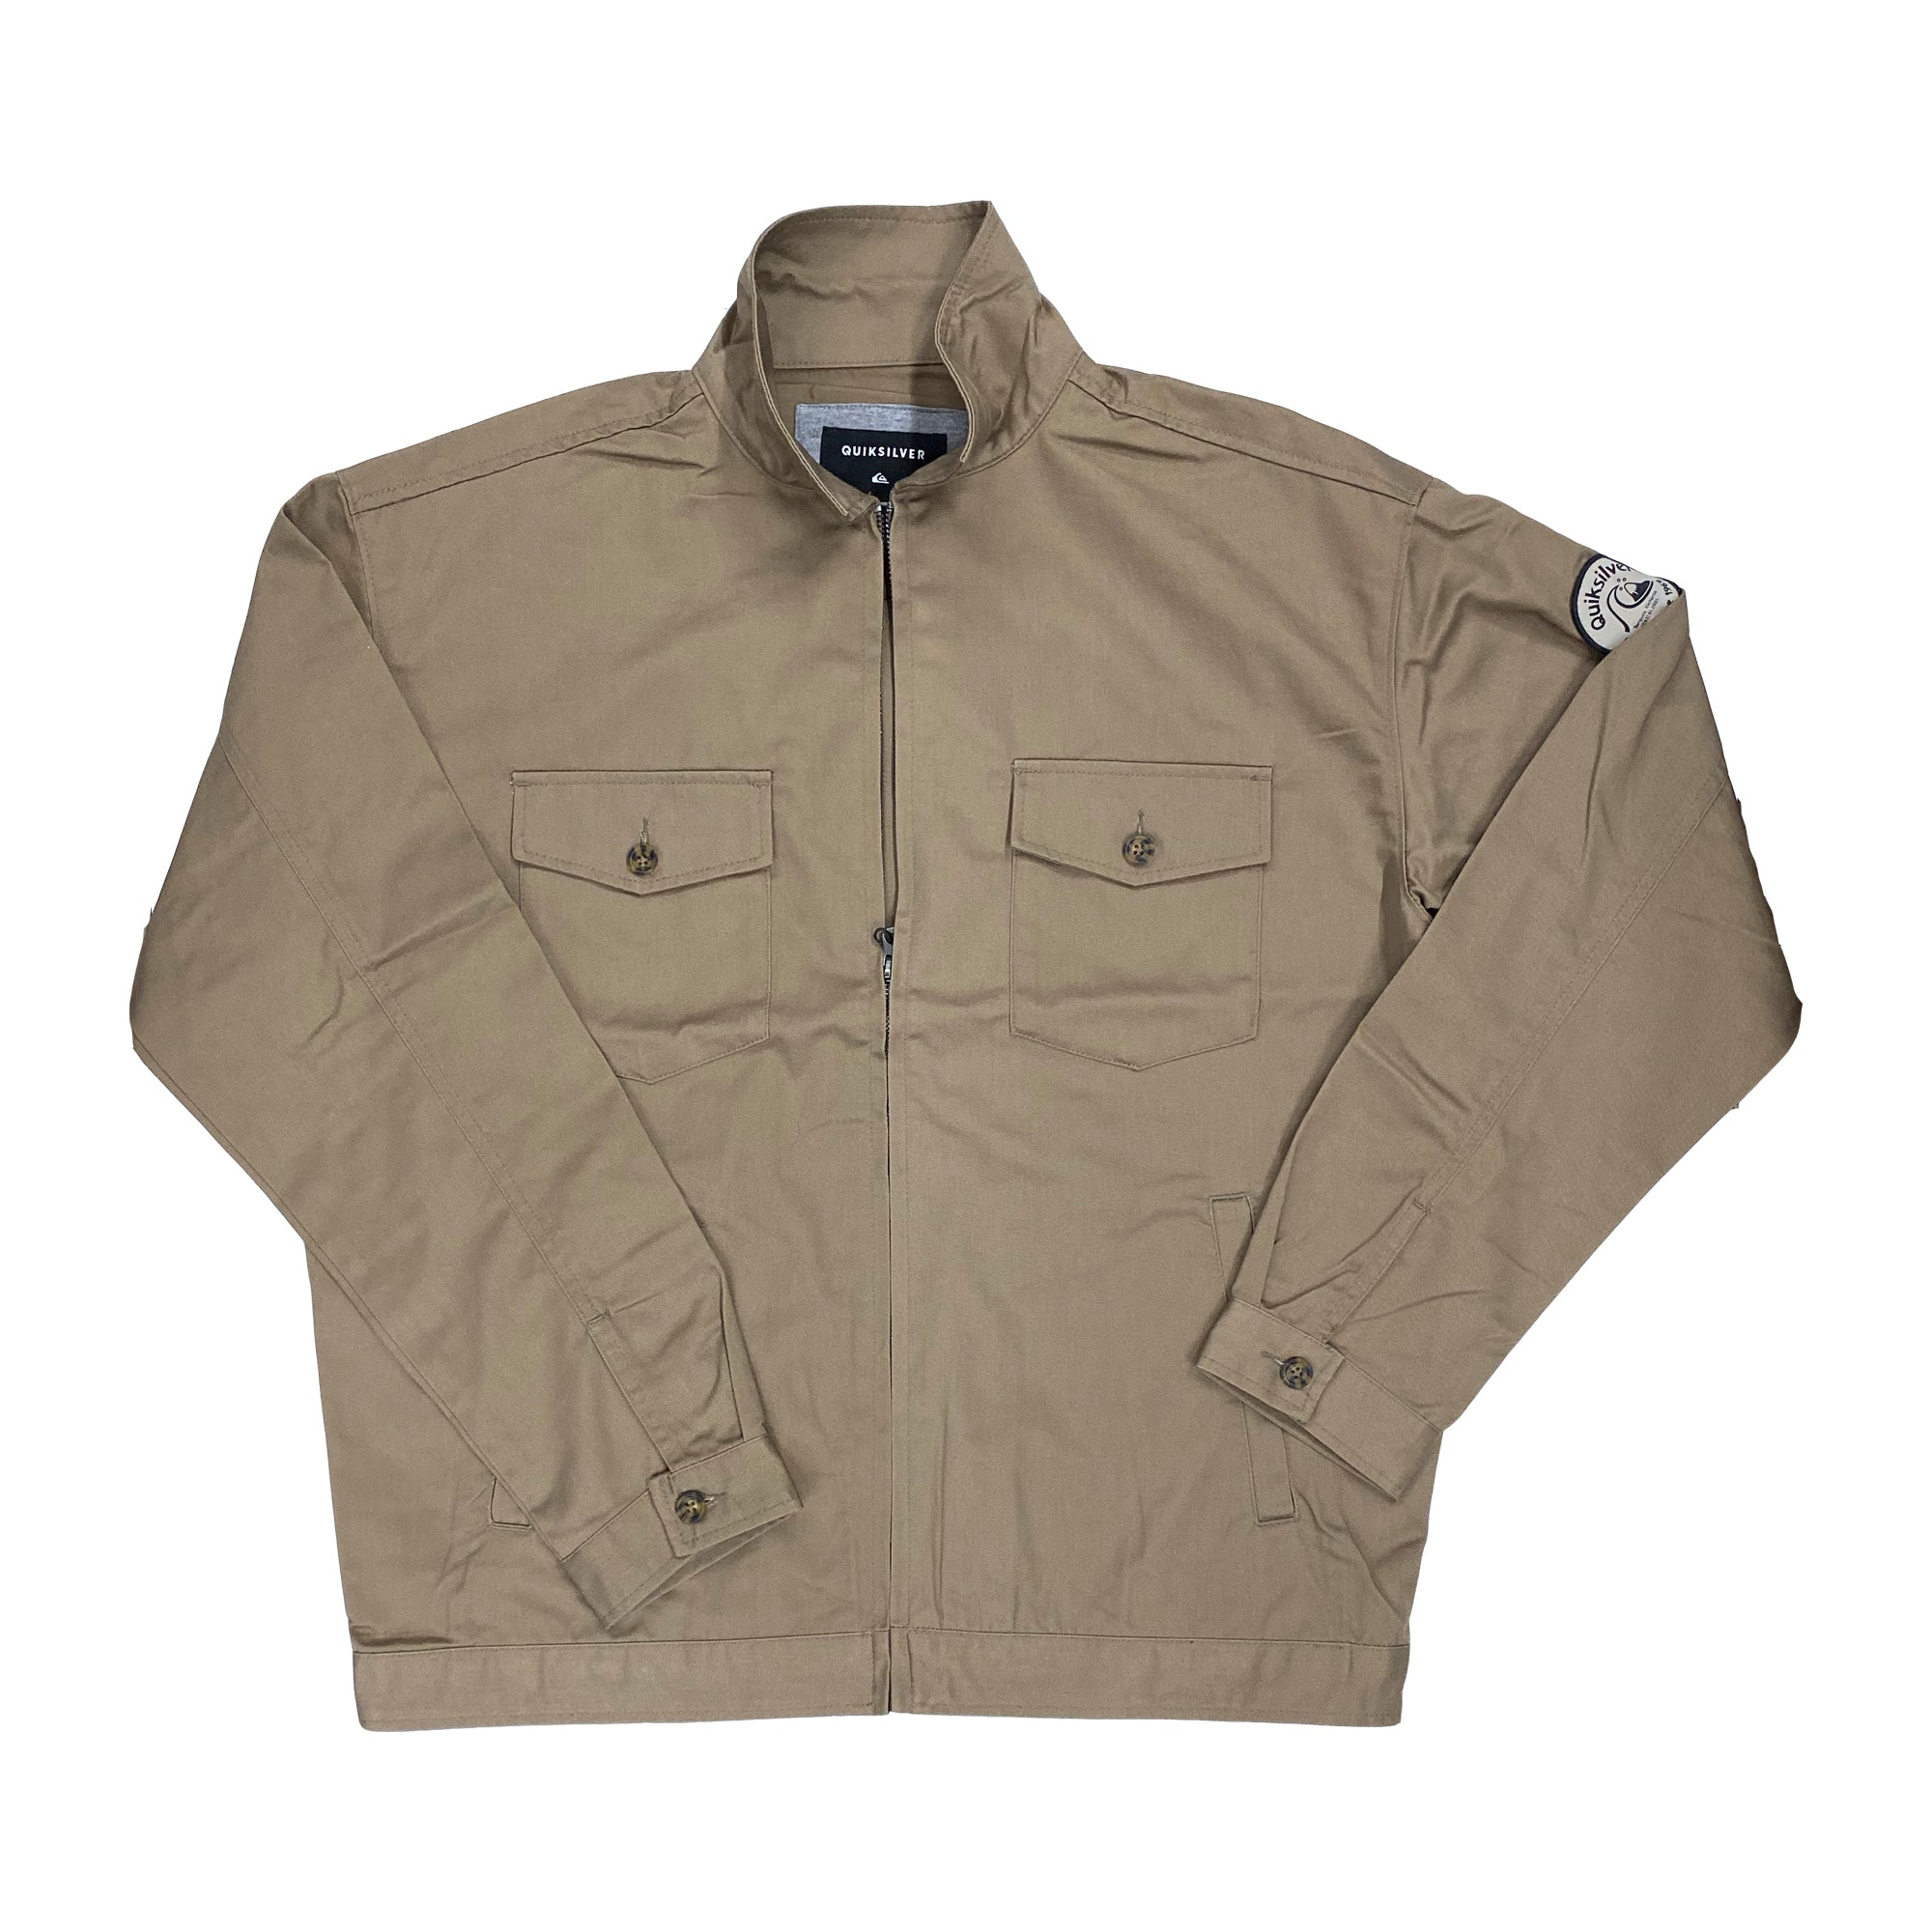 Quiksilver Snappy On The Rocks Men's Jacket